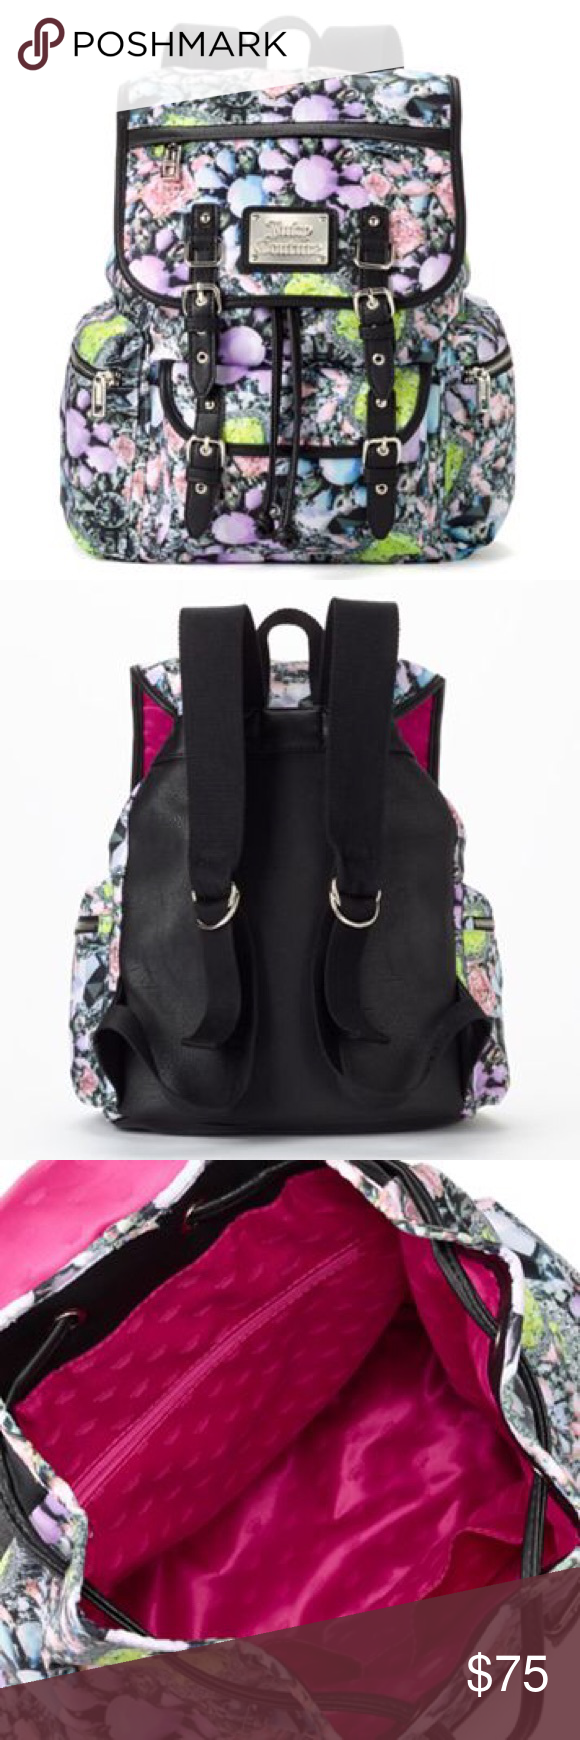 696f4fd142dd Juicy Couture Floral Backpack Bag School Fall NWT Capture the spotlight  with this Juicy Couture flower power school campus backpack bag.